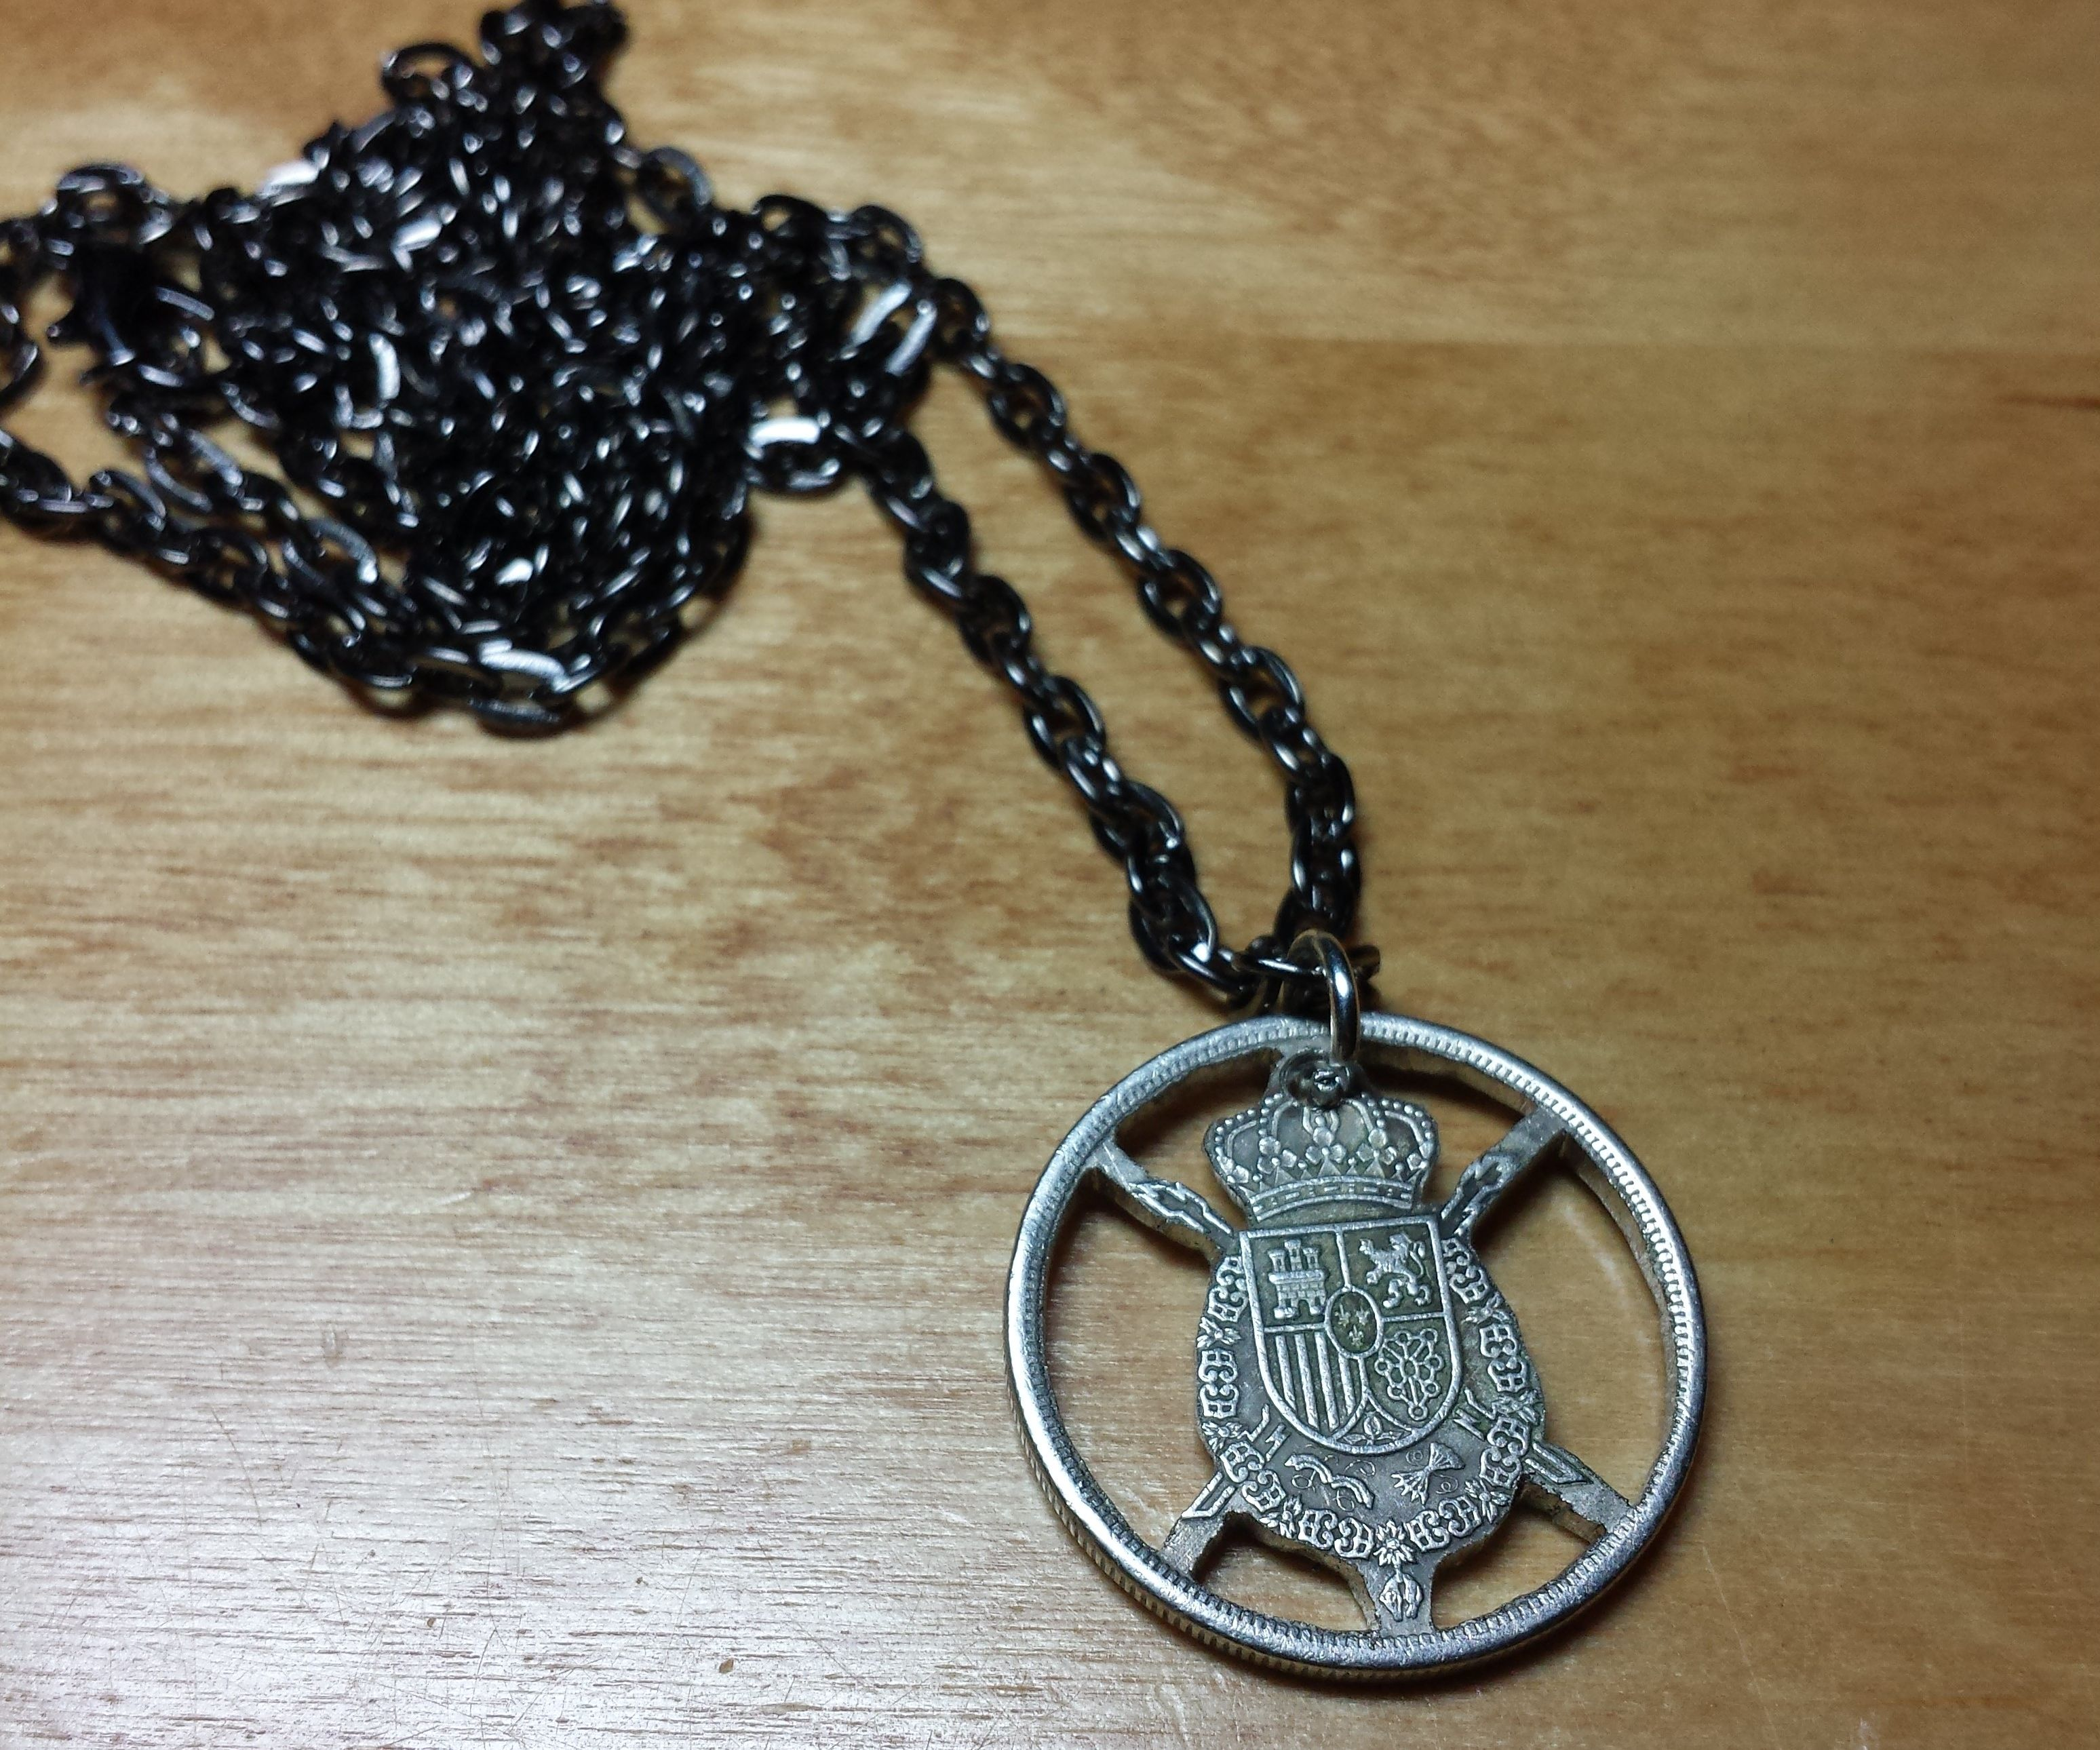 Making a Cutout Coin Necklace